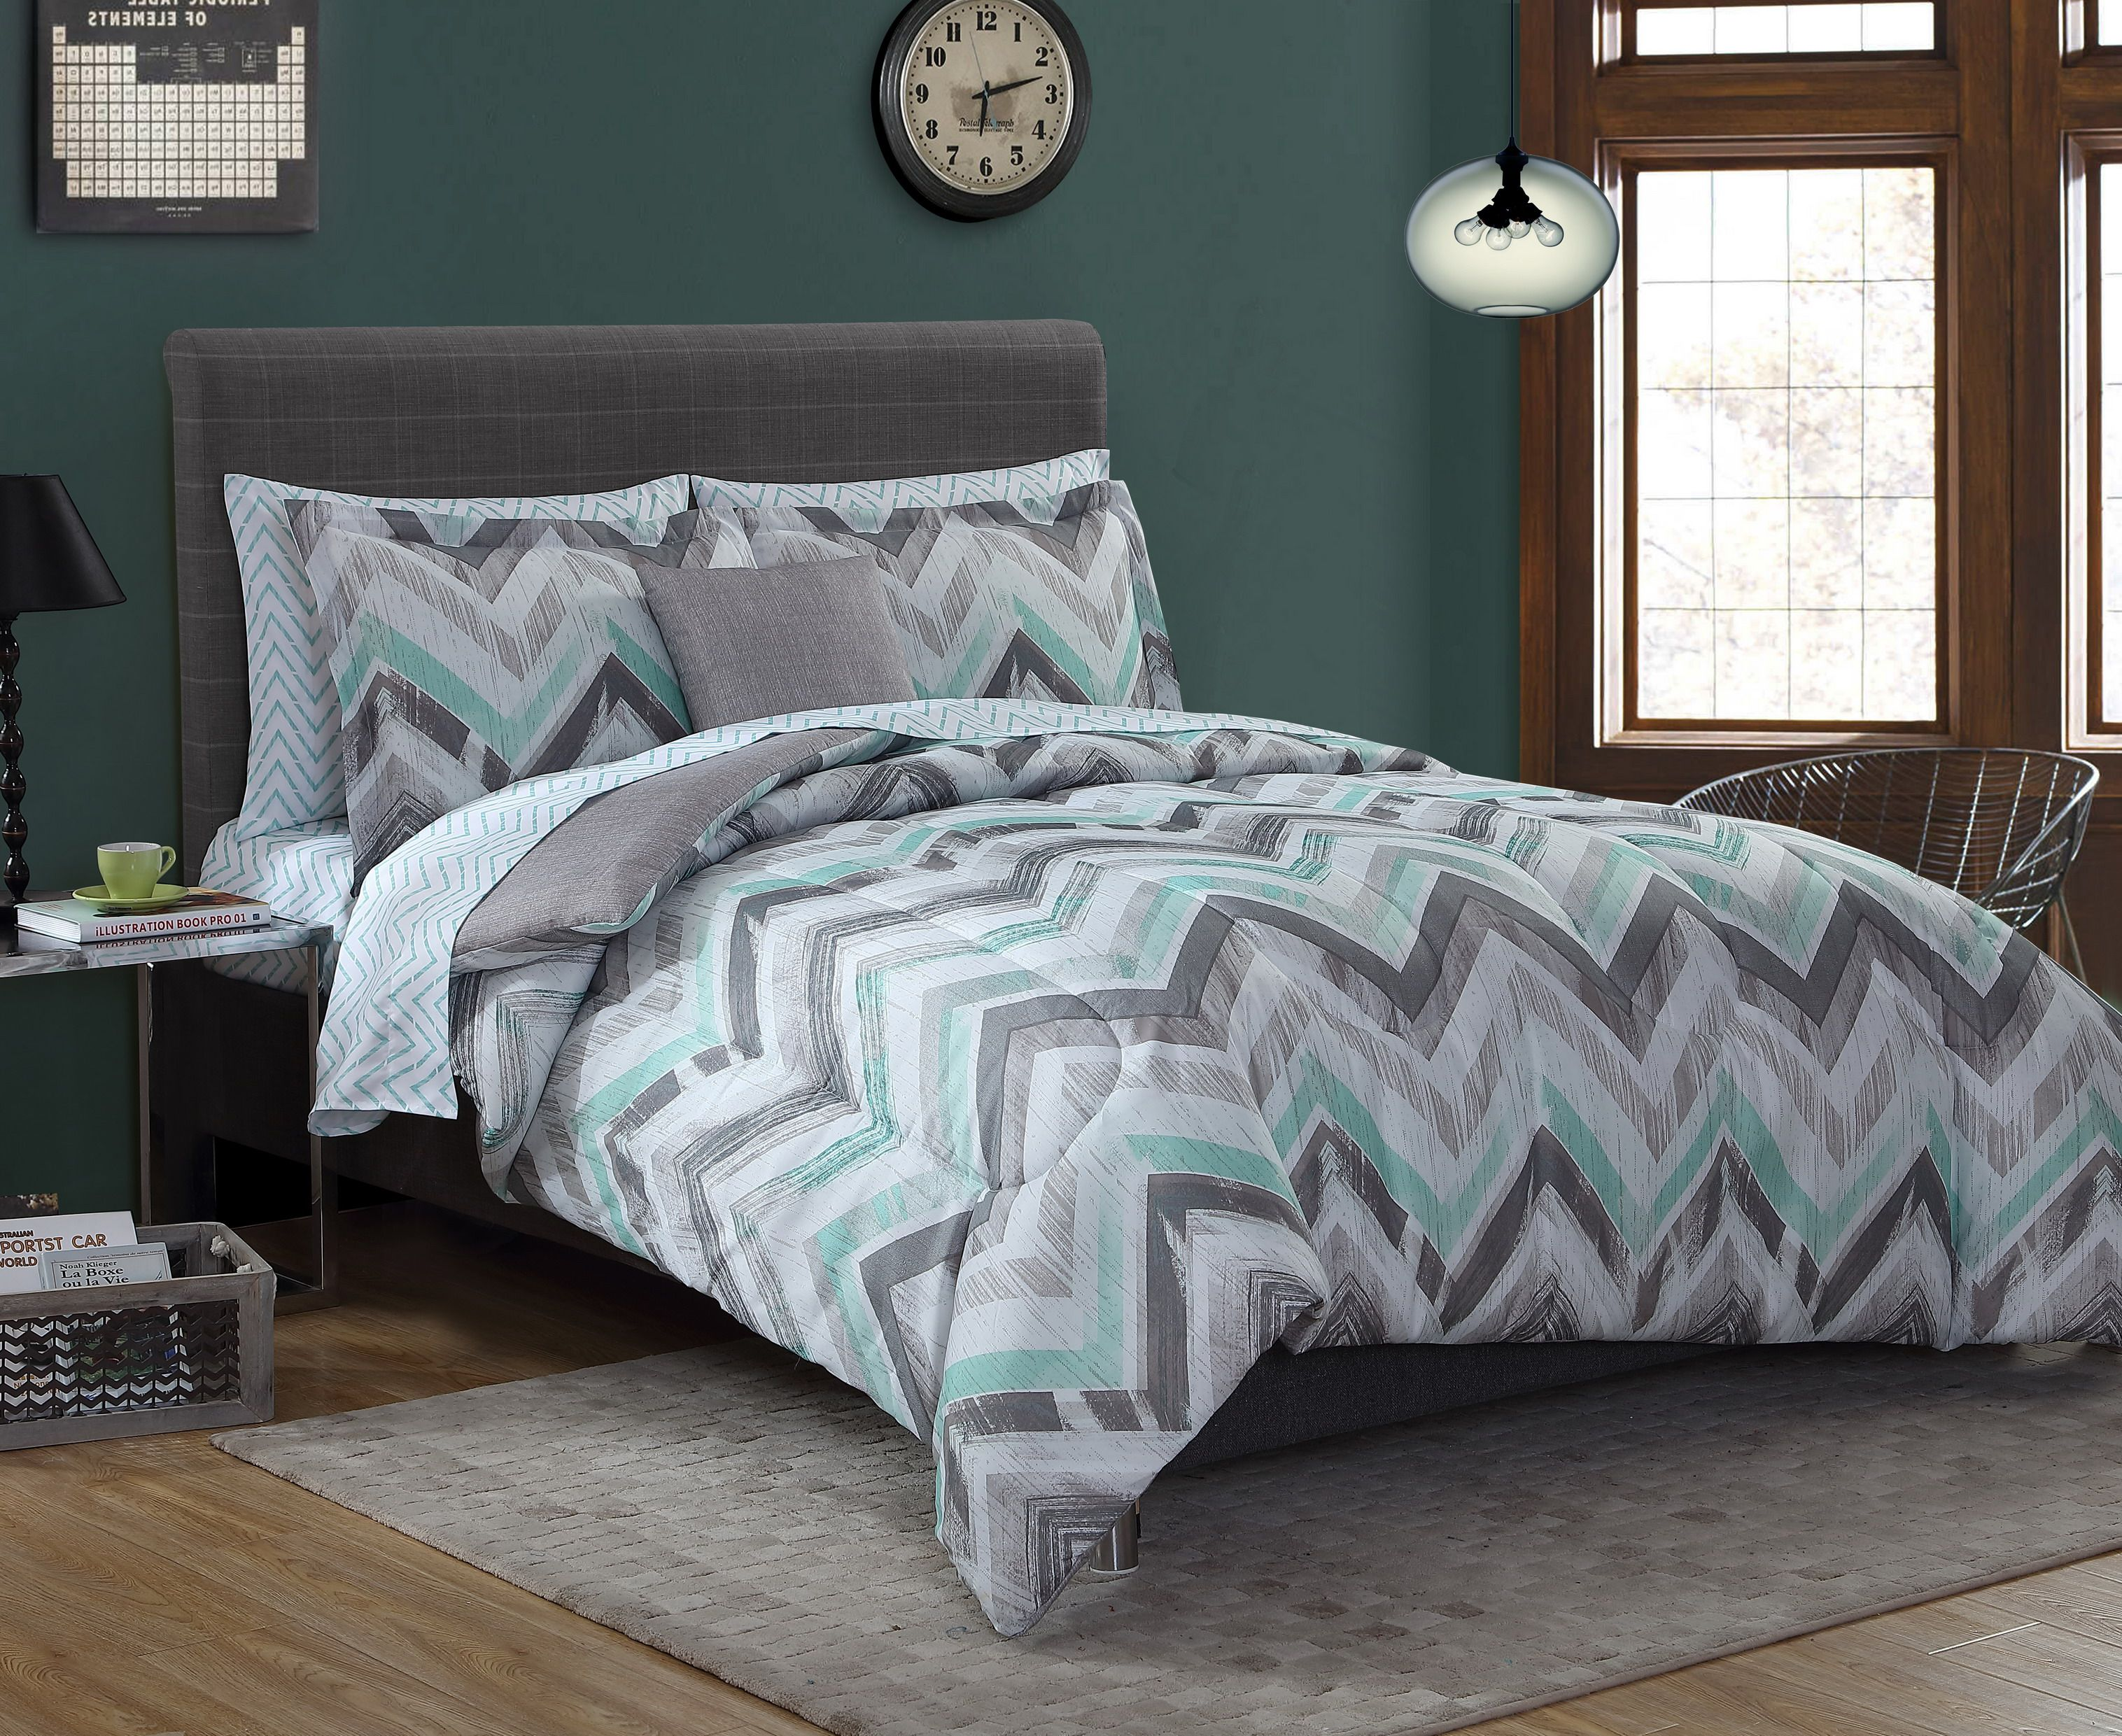 Bedroom Ideas Grey And Teal Bedroomideas Teal Bedding Teal Bedding Sets Bed Linens Luxury